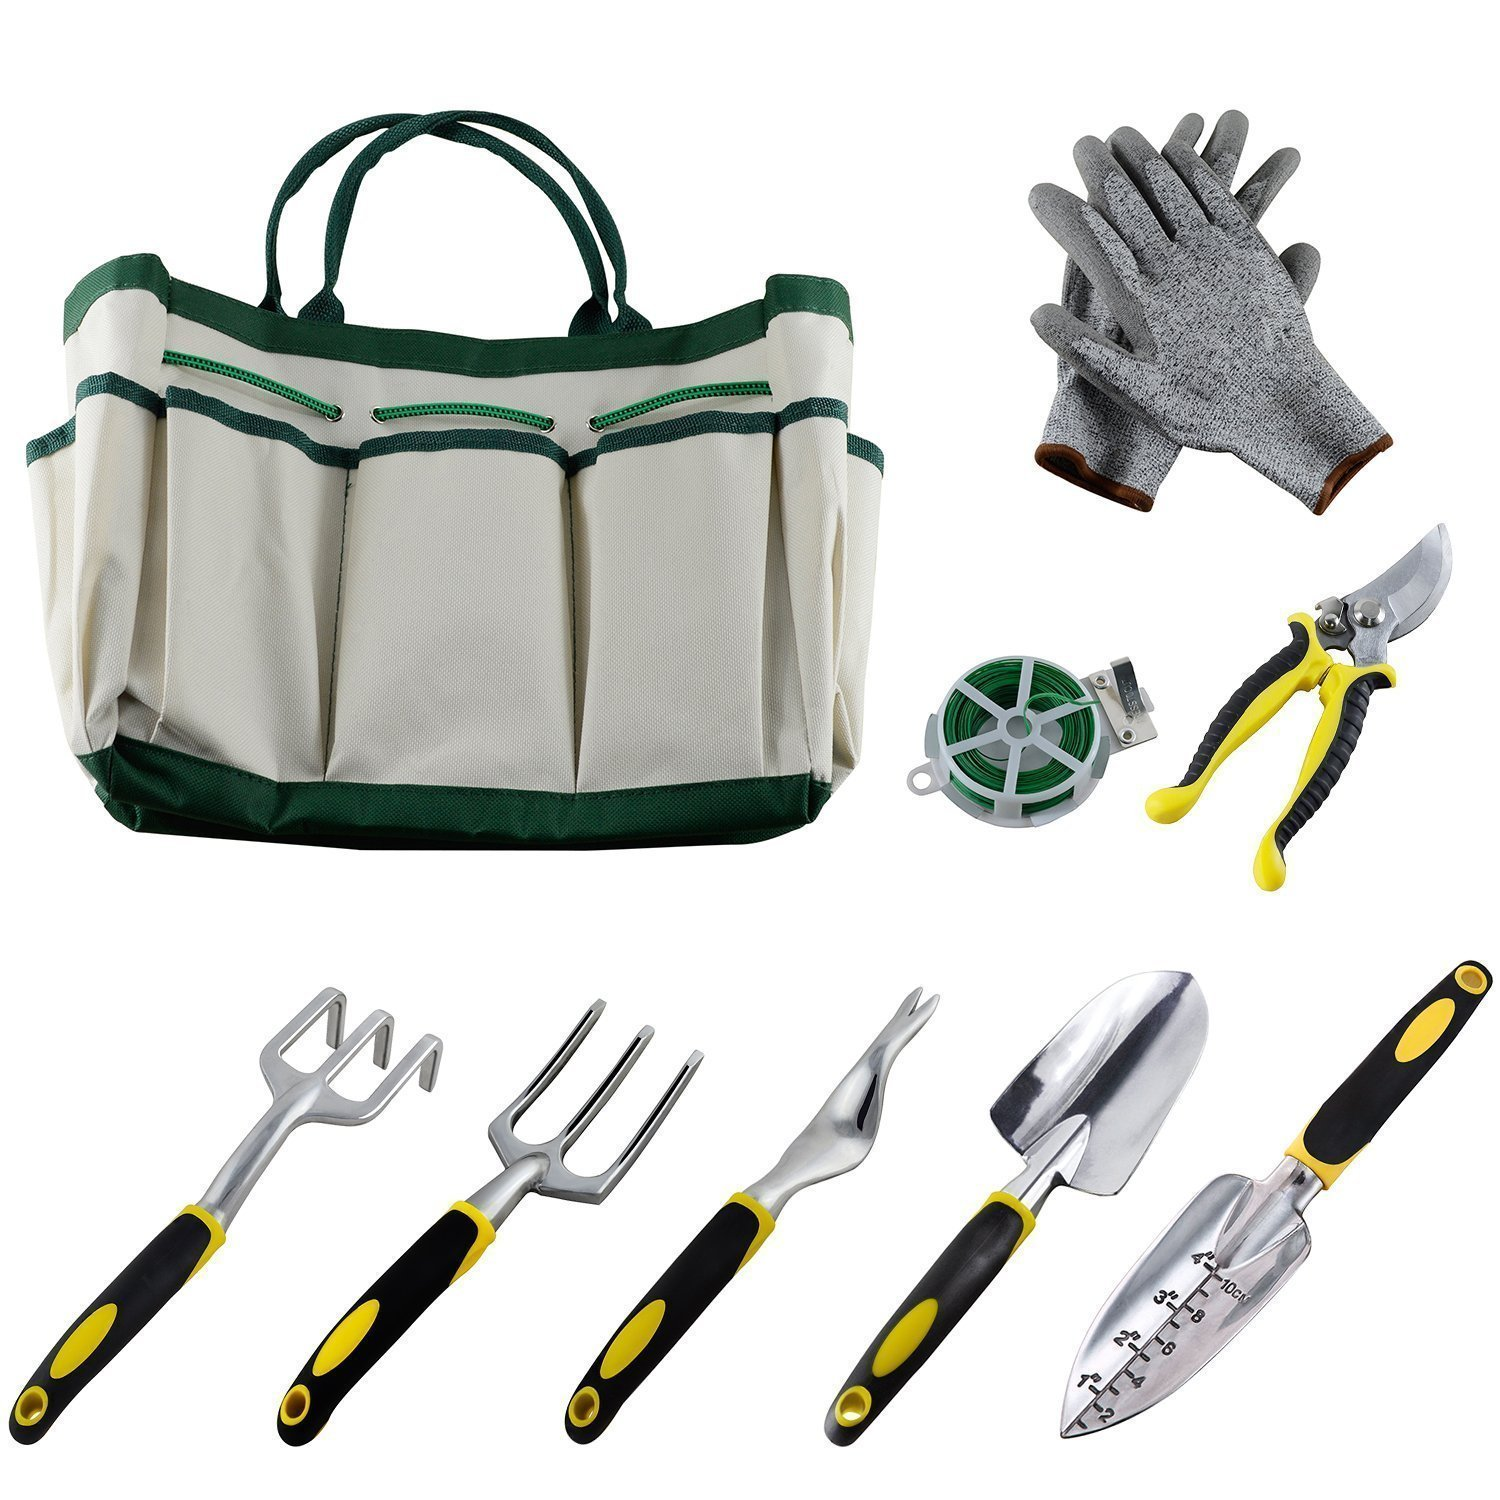 Ucharge 9Pcs Garden Tool Sets